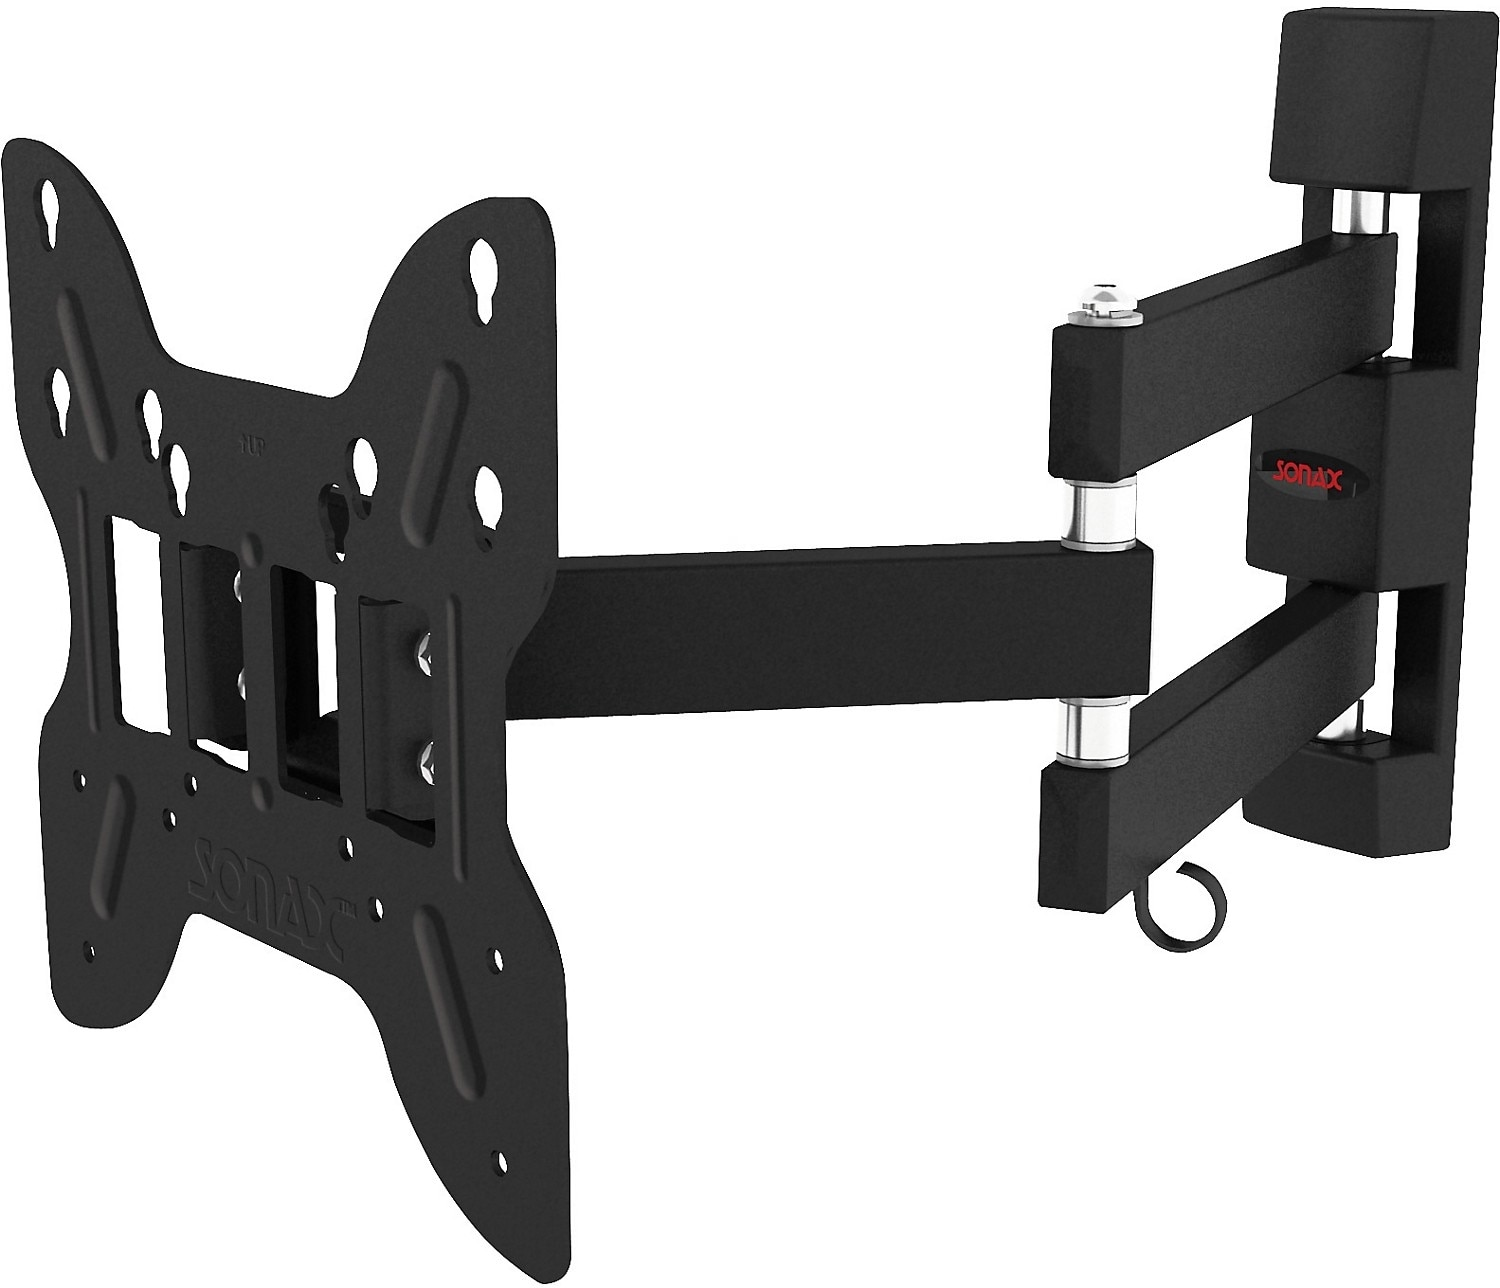 "Sonax Adjustable 14"" - 40"" Full Motion Flat Panel TV Wall Mount – Black"